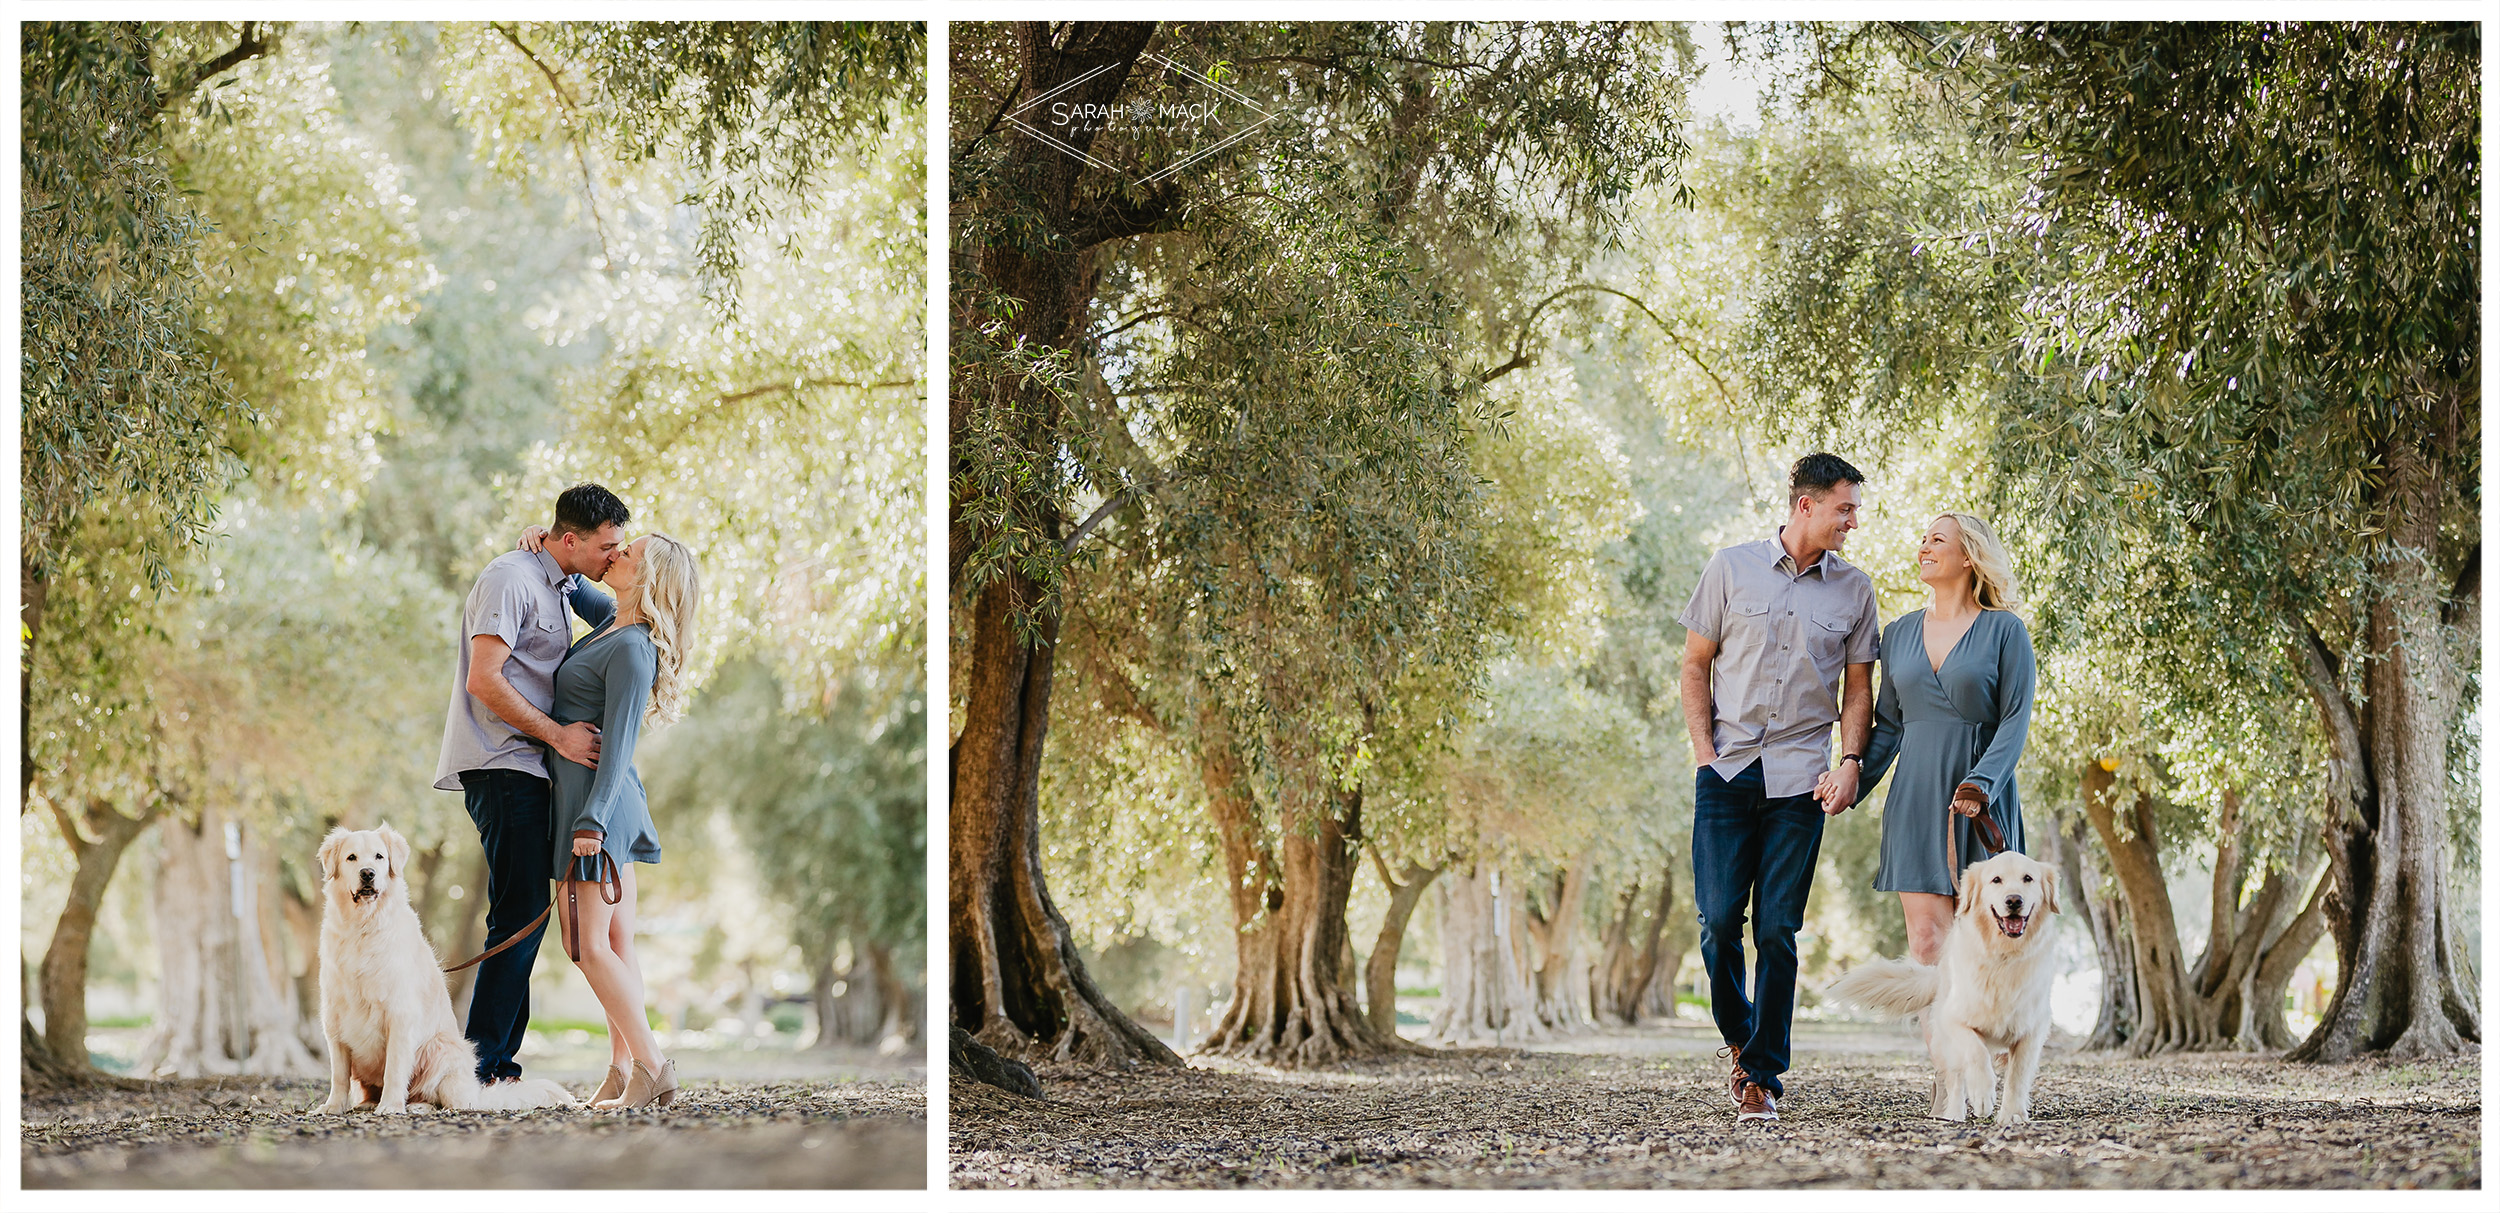 MA-Highland-Springs-Ranch-Engagement-Photography-2.jpg